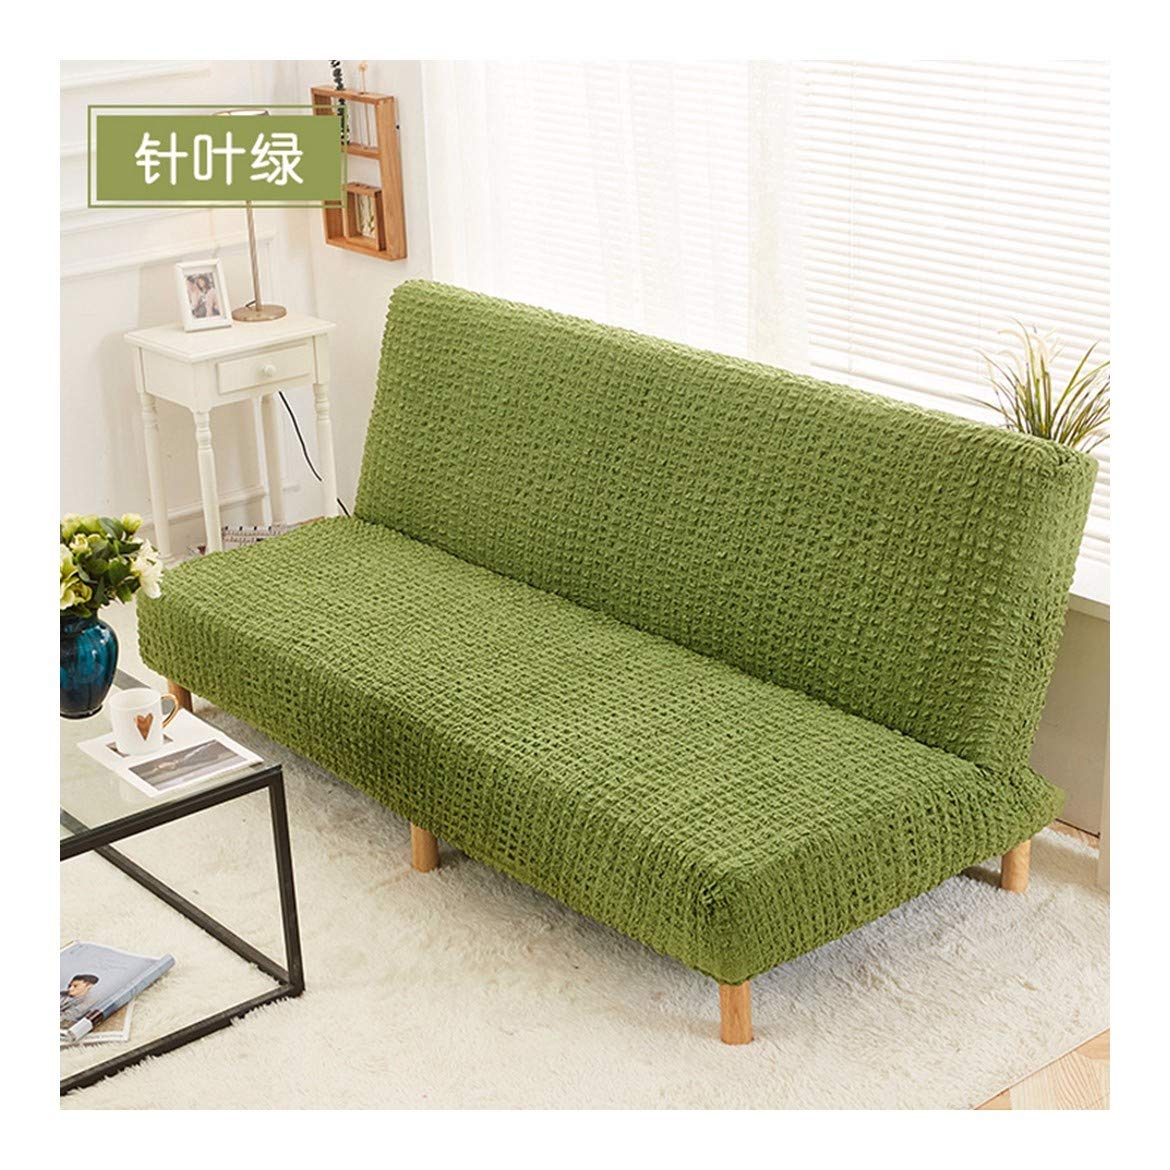 4seat VGUYFUYH Green Folding Sofa Bed Full Package Sofa Cover Polyester Elasticity Home Universal Sofa Cover Simple Fashion One Piece Durable Dust-Proof Pet Dog Predective Cover (160-190Cm),4Seat